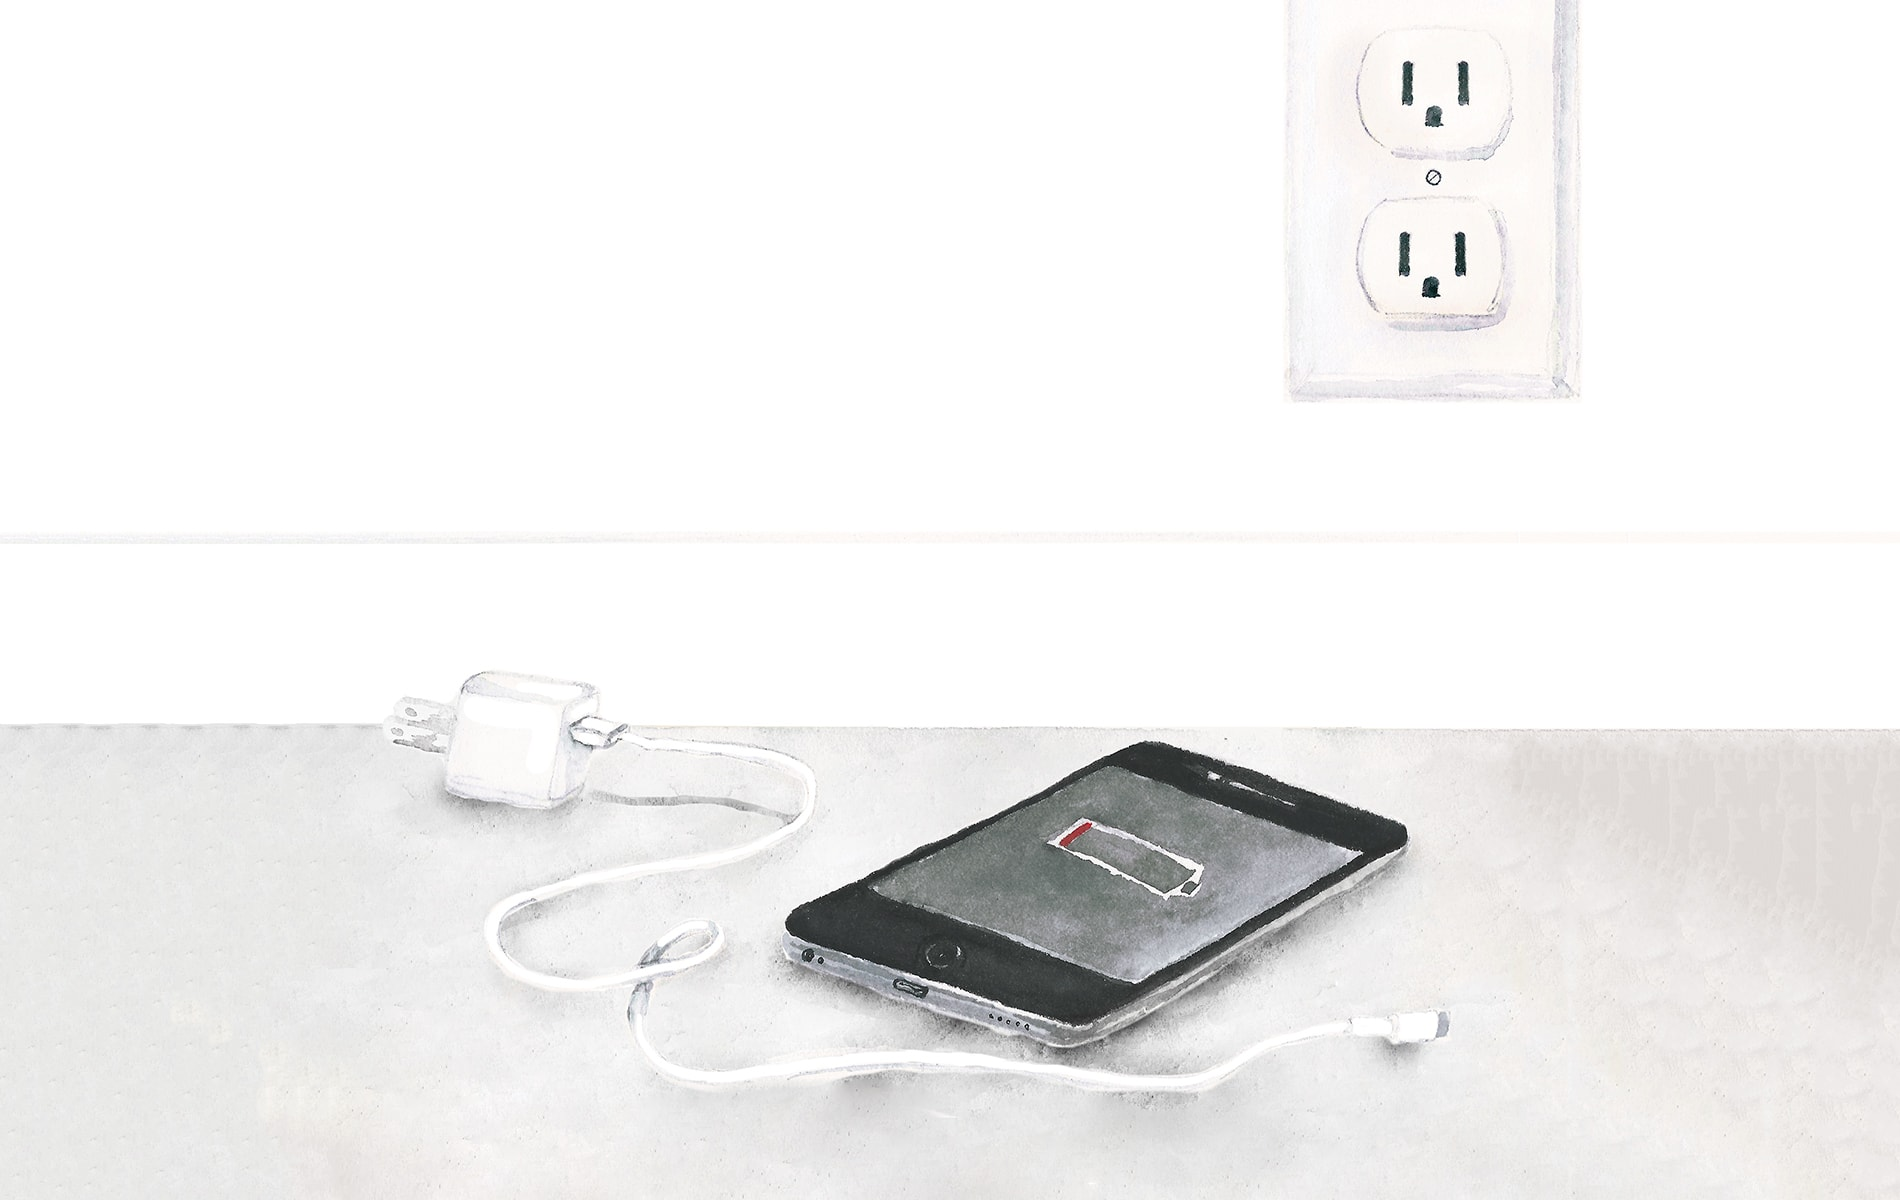 unplug tech column, iphone illustration